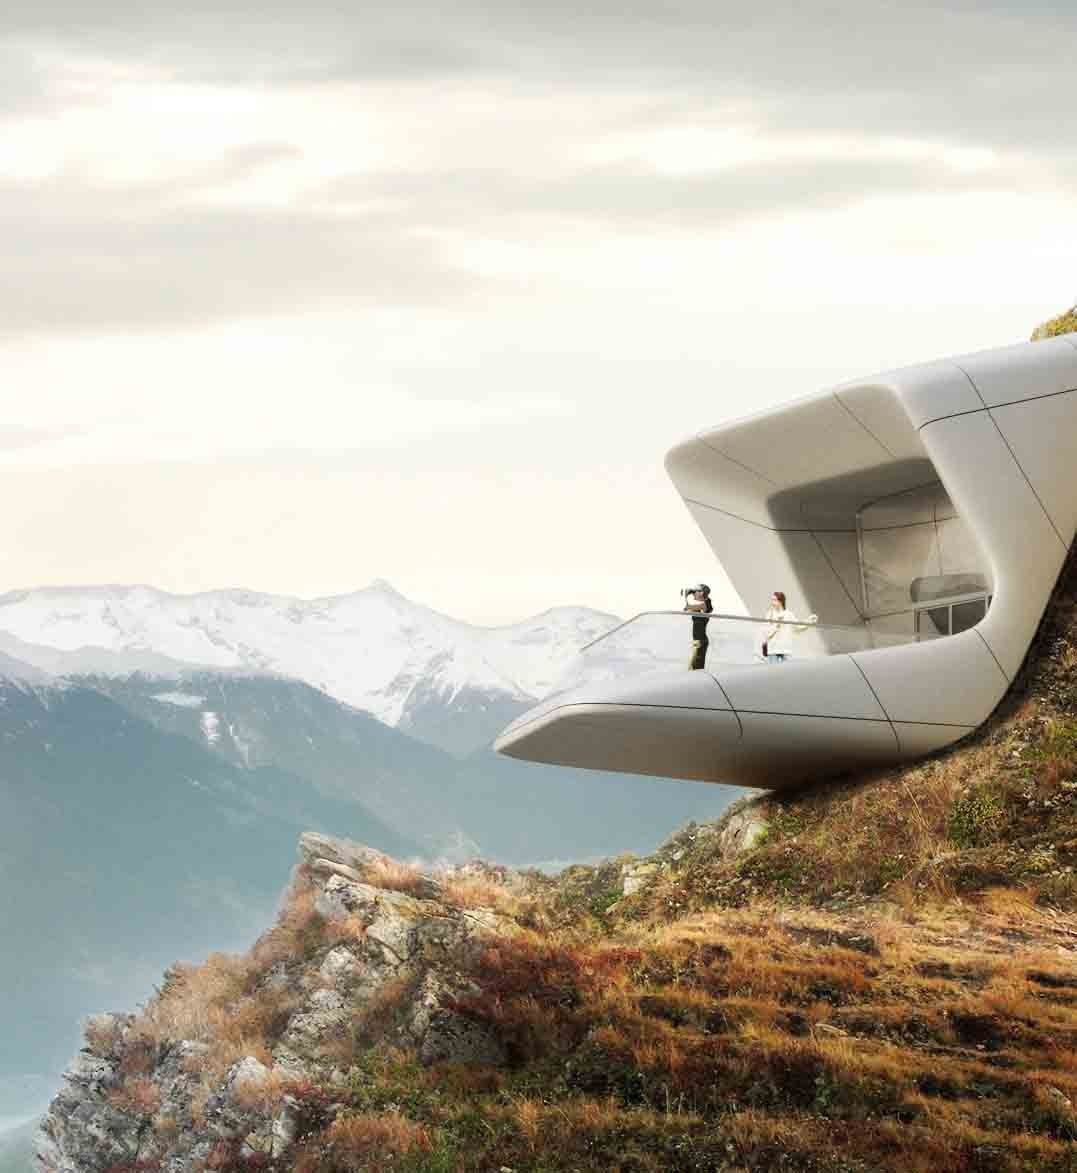 Messner Mountain Museum at Plan de Corones Proposal / Zaha Hadid Architects, Courtesy of Zaha Hadid Architects